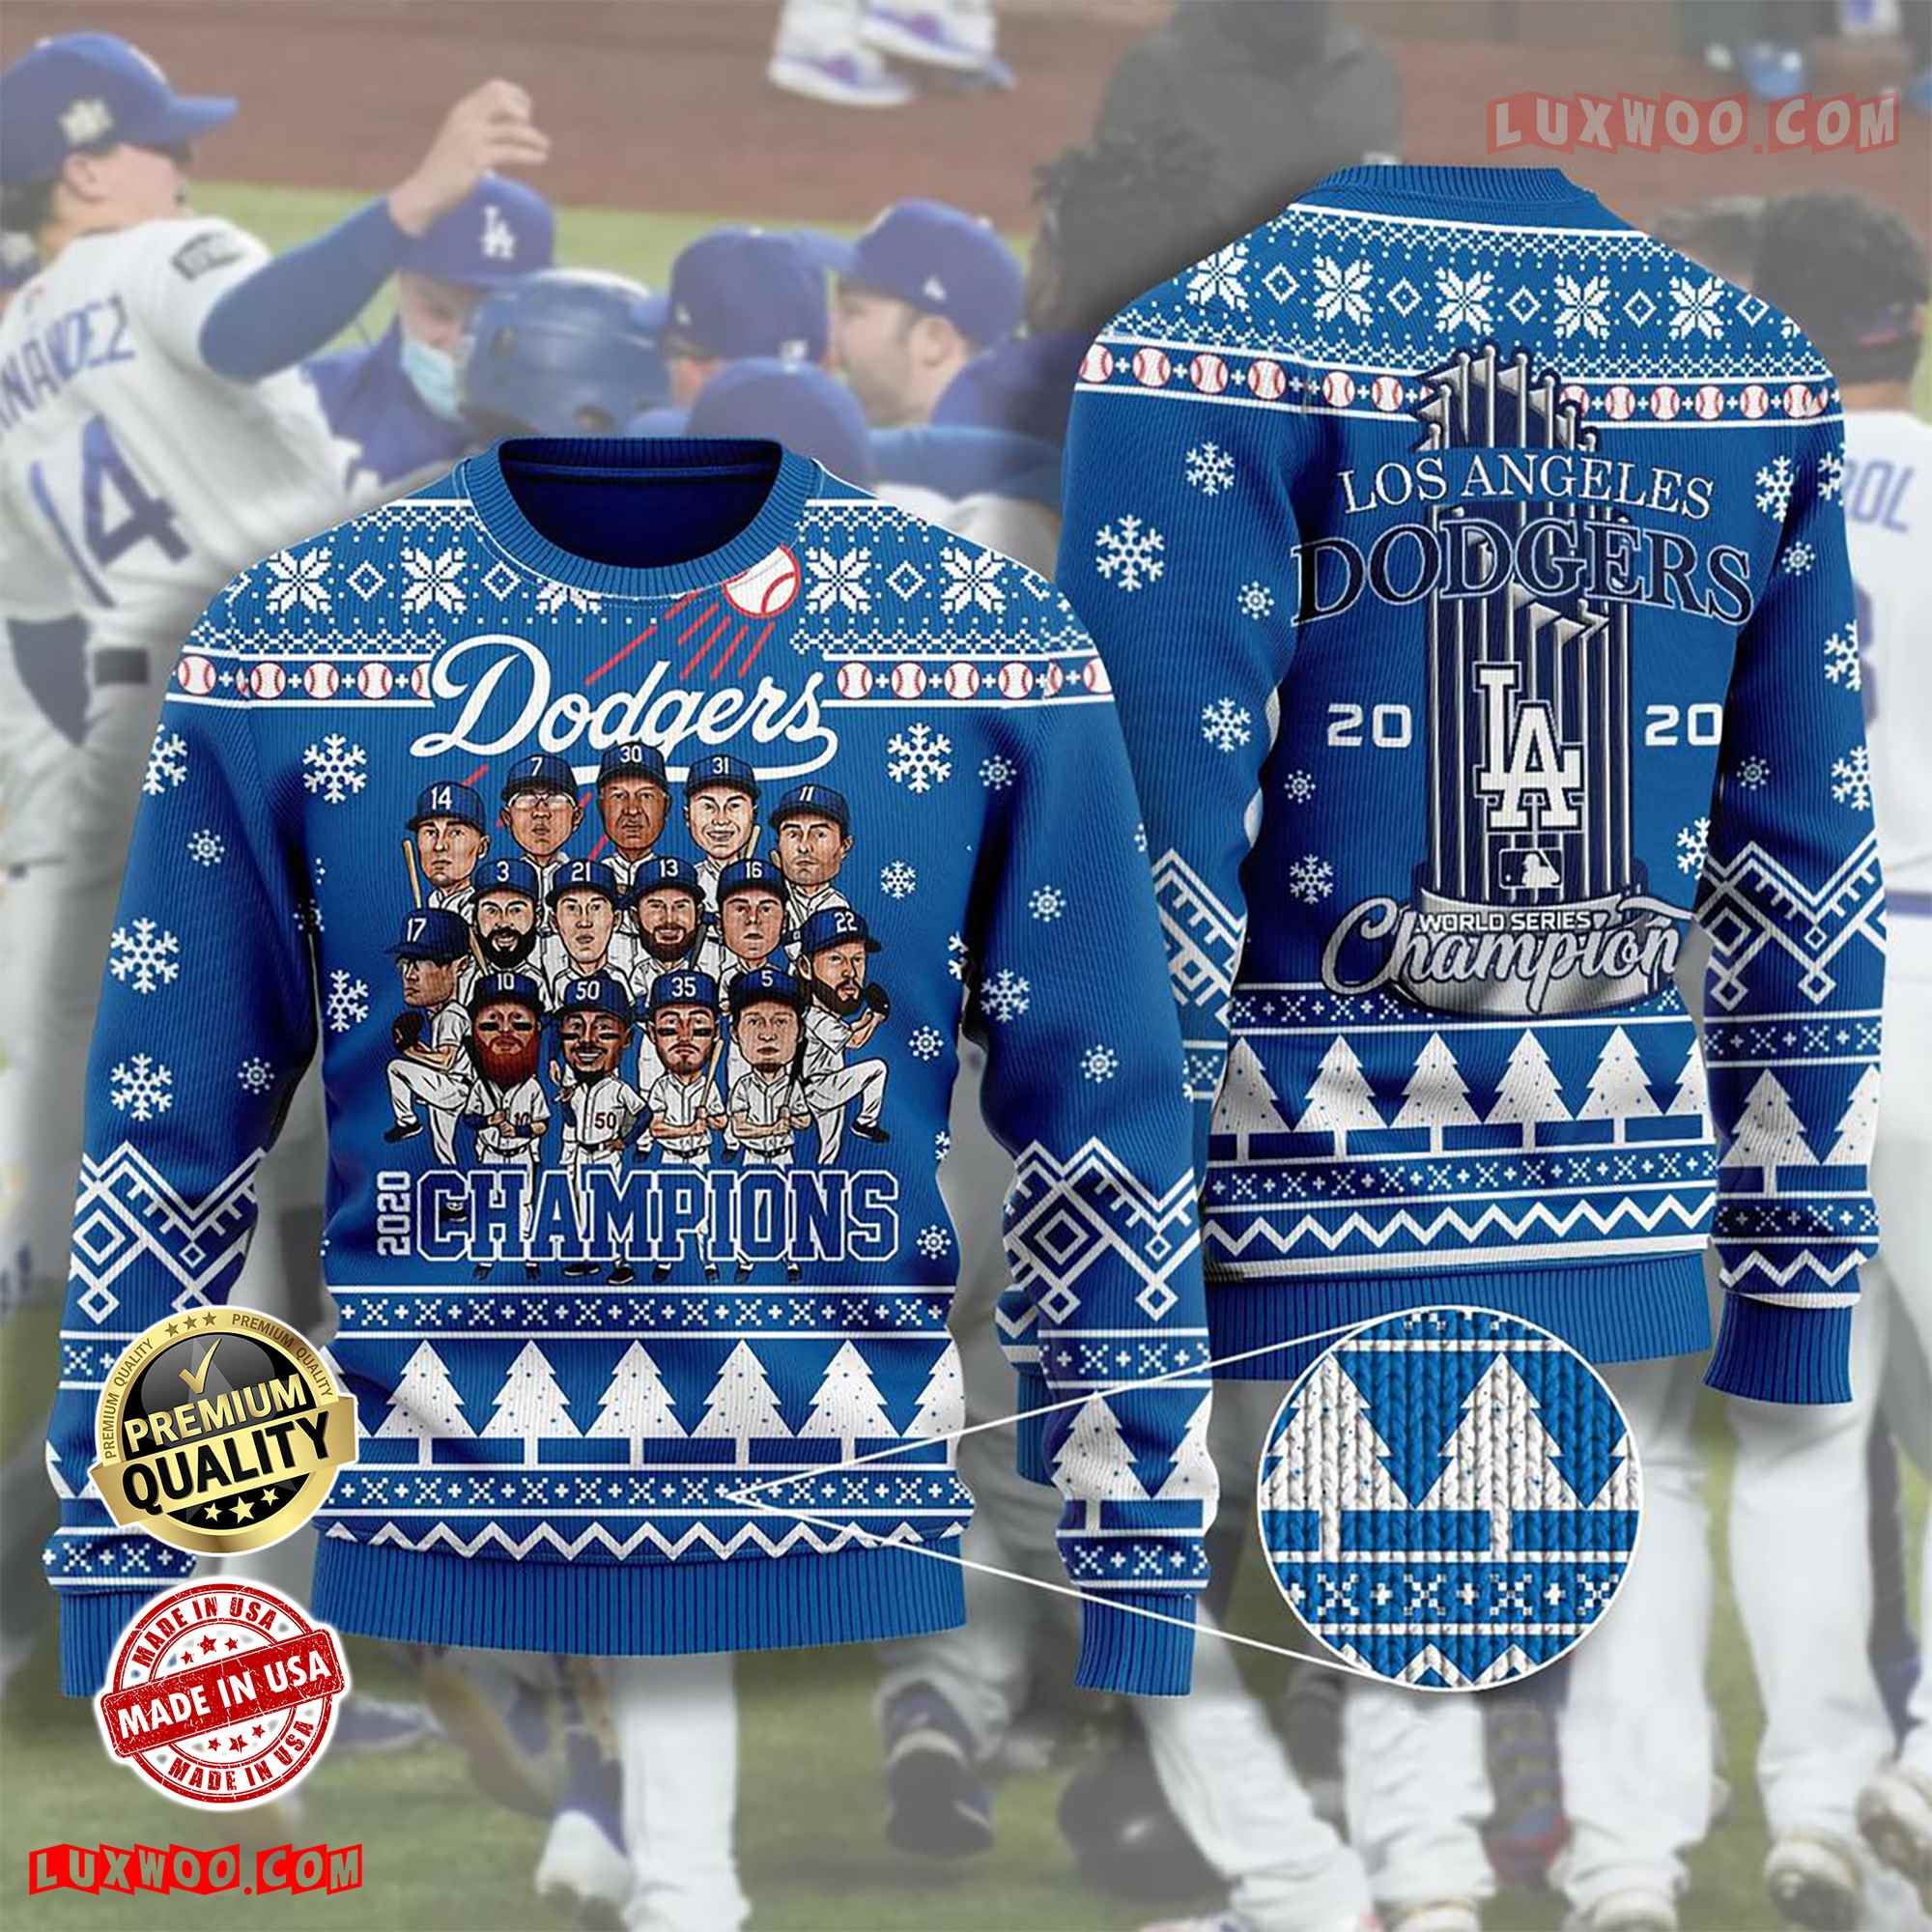 Los Angeles Dodgers Chibi Ugly Christmas Sweater World Champions Sweater Christmas Sweater Wool Material